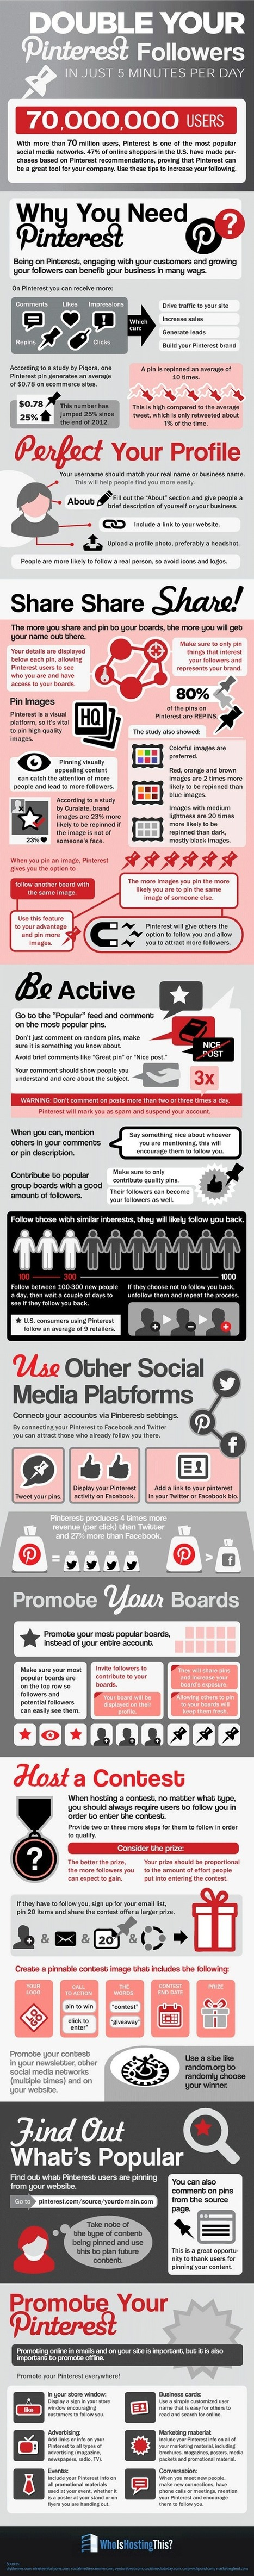 How to double Pinterest followers in 5 minutes per day - Infographic | digital marketing strategy | Scoop.it